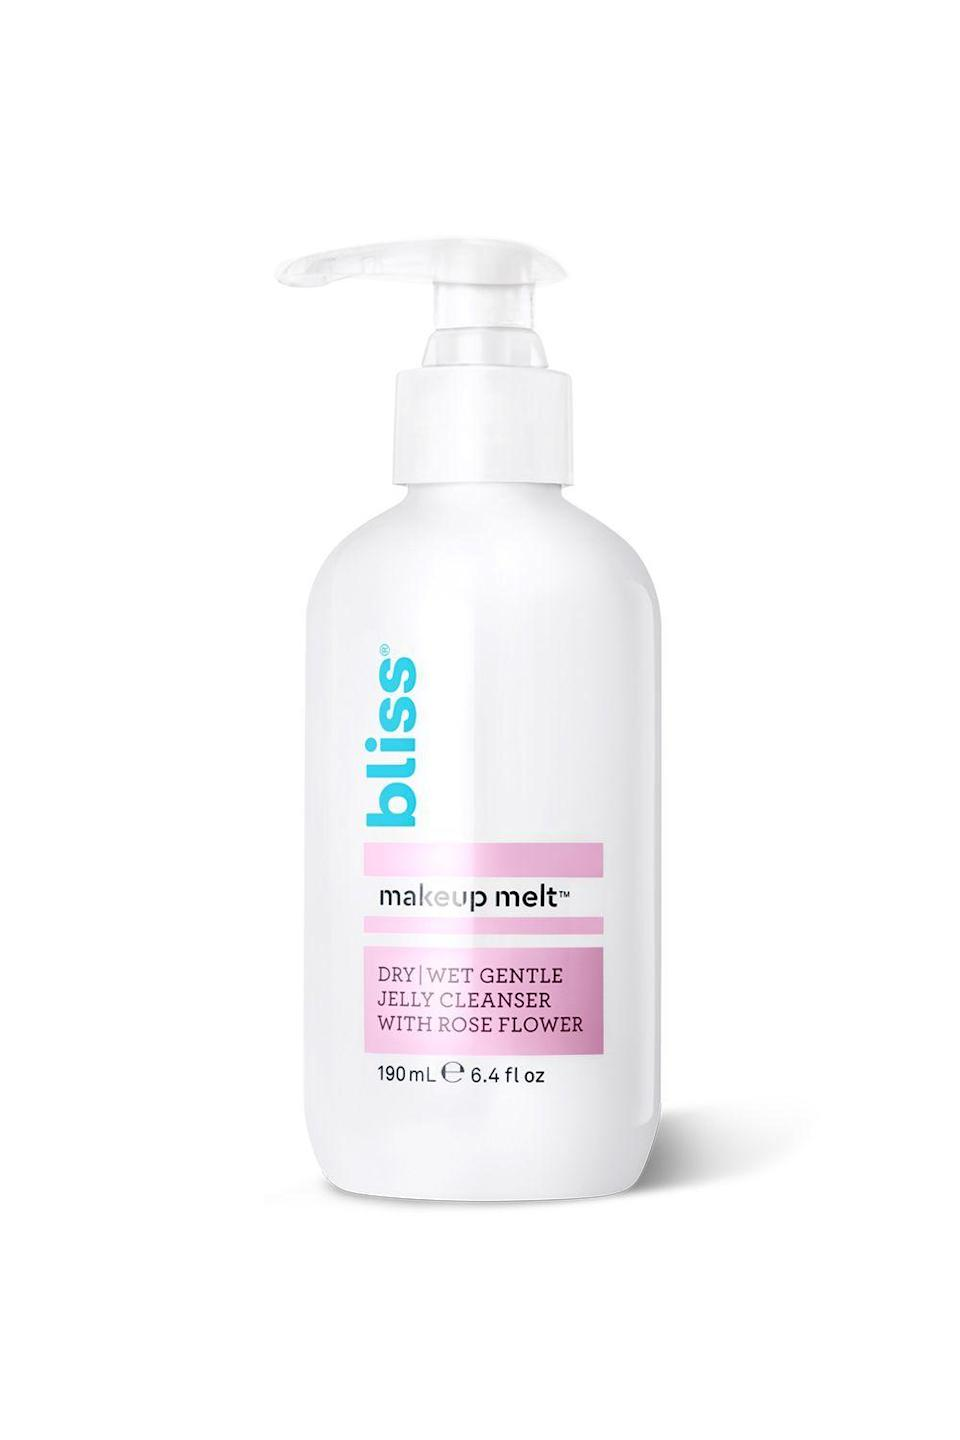 """<p><strong>Bliss</strong></p><p>ulta.com</p><p><strong>$13.00</strong></p><p><a href=""""https://go.redirectingat.com?id=74968X1596630&url=https%3A%2F%2Fwww.ulta.com%2Fmakeup-melt-jelly-cleanser%3FproductId%3DxlsImpprod17921128&sref=https%3A%2F%2Fwww.cosmopolitan.com%2Fstyle-beauty%2Fbeauty%2Fg19620718%2Fbest-makeup-remover%2F"""" rel=""""nofollow noopener"""" target=""""_blank"""" data-ylk=""""slk:Shop Now"""" class=""""link rapid-noclick-resp"""">Shop Now</a></p><p>This formula can be used on dry or wet skin. Here's how: On dry skin, it breaks down makeup with a quick swipe over your face with a cotton pad. On wet skin, its milky jelly consistency is viscous enough to stay on your skin (without sliding off your face) <strong>to help dissolve your makeup, dirt, and excess <a href=""""https://www.cosmopolitan.com/style-beauty/beauty/g25456501/best-face-oil/"""" rel=""""nofollow noopener"""" target=""""_blank"""" data-ylk=""""slk:oils"""" class=""""link rapid-noclick-resp"""">oils</a>.</strong></p>"""